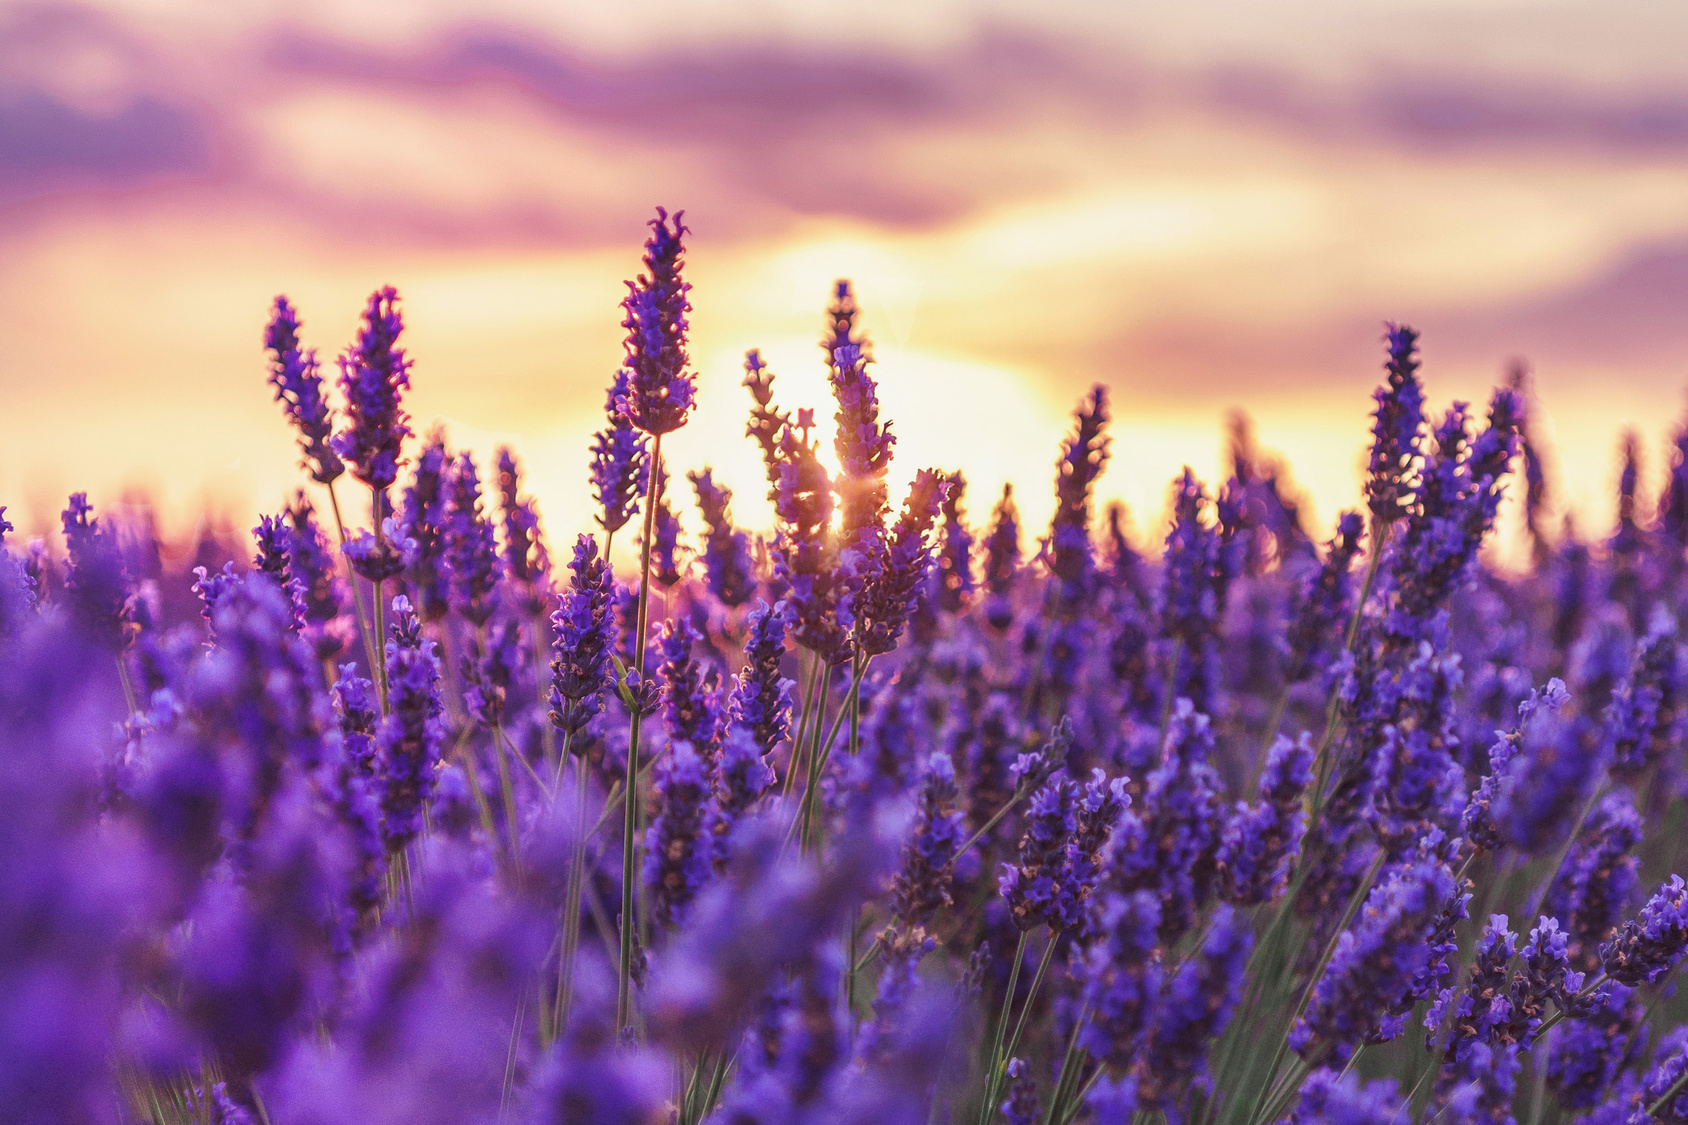 Beautiful sunset on lavender fields in Provence, France.Lavender closeup on the background of the setting sun.Lavender field with a blurred focus.Lavender field over sunser sky.